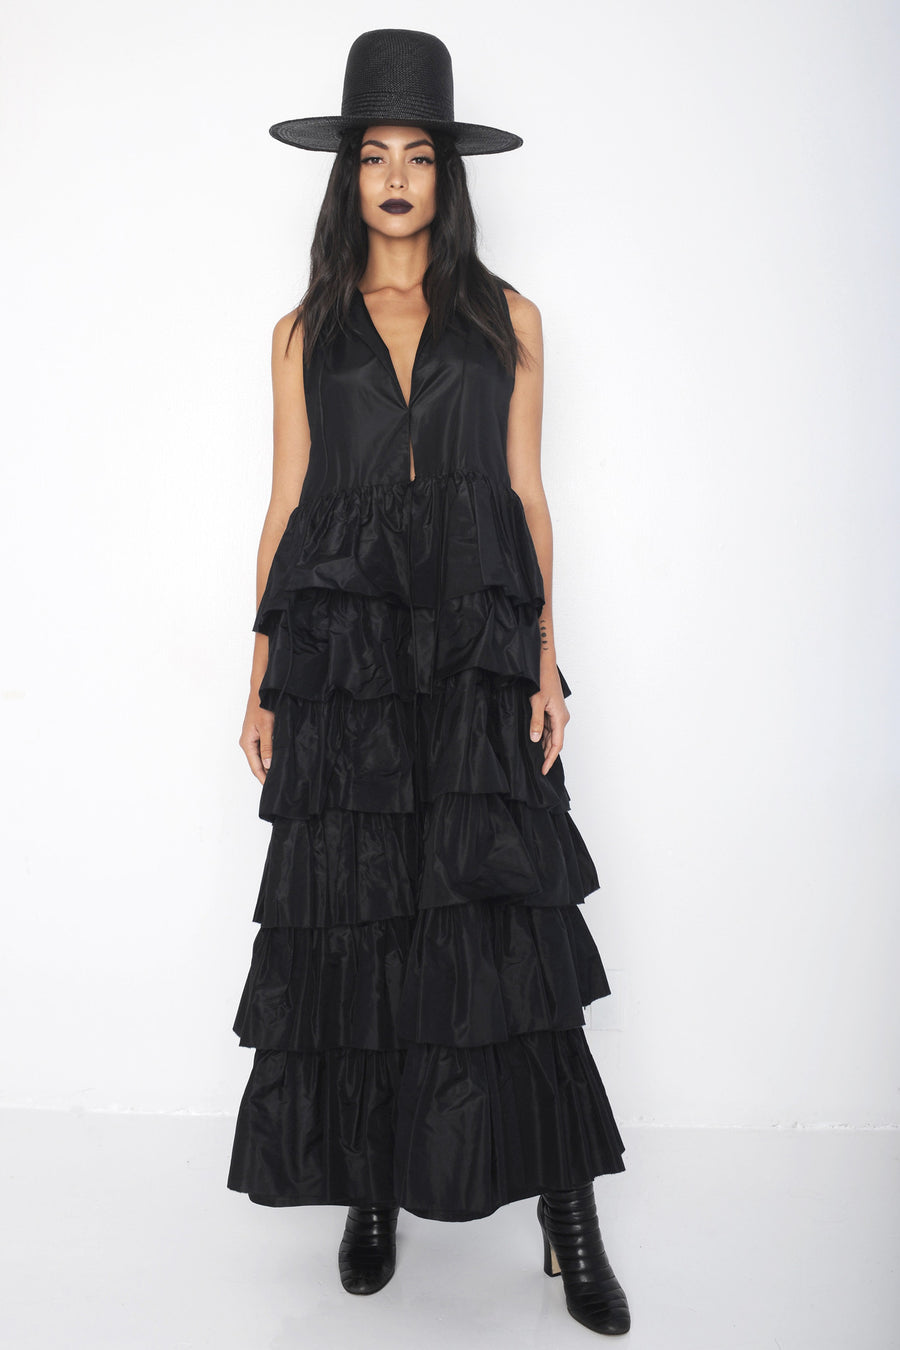 Monic IMG Model Wendy Nichol Clothing Designer Ready to Wear Fashion Runway Show SS16 Guardians of Light Dusk Ruffle Dress Modern Sleeveless Silk Layered Ruffles Handmade in NYC Black Straw Wide Brim Hat